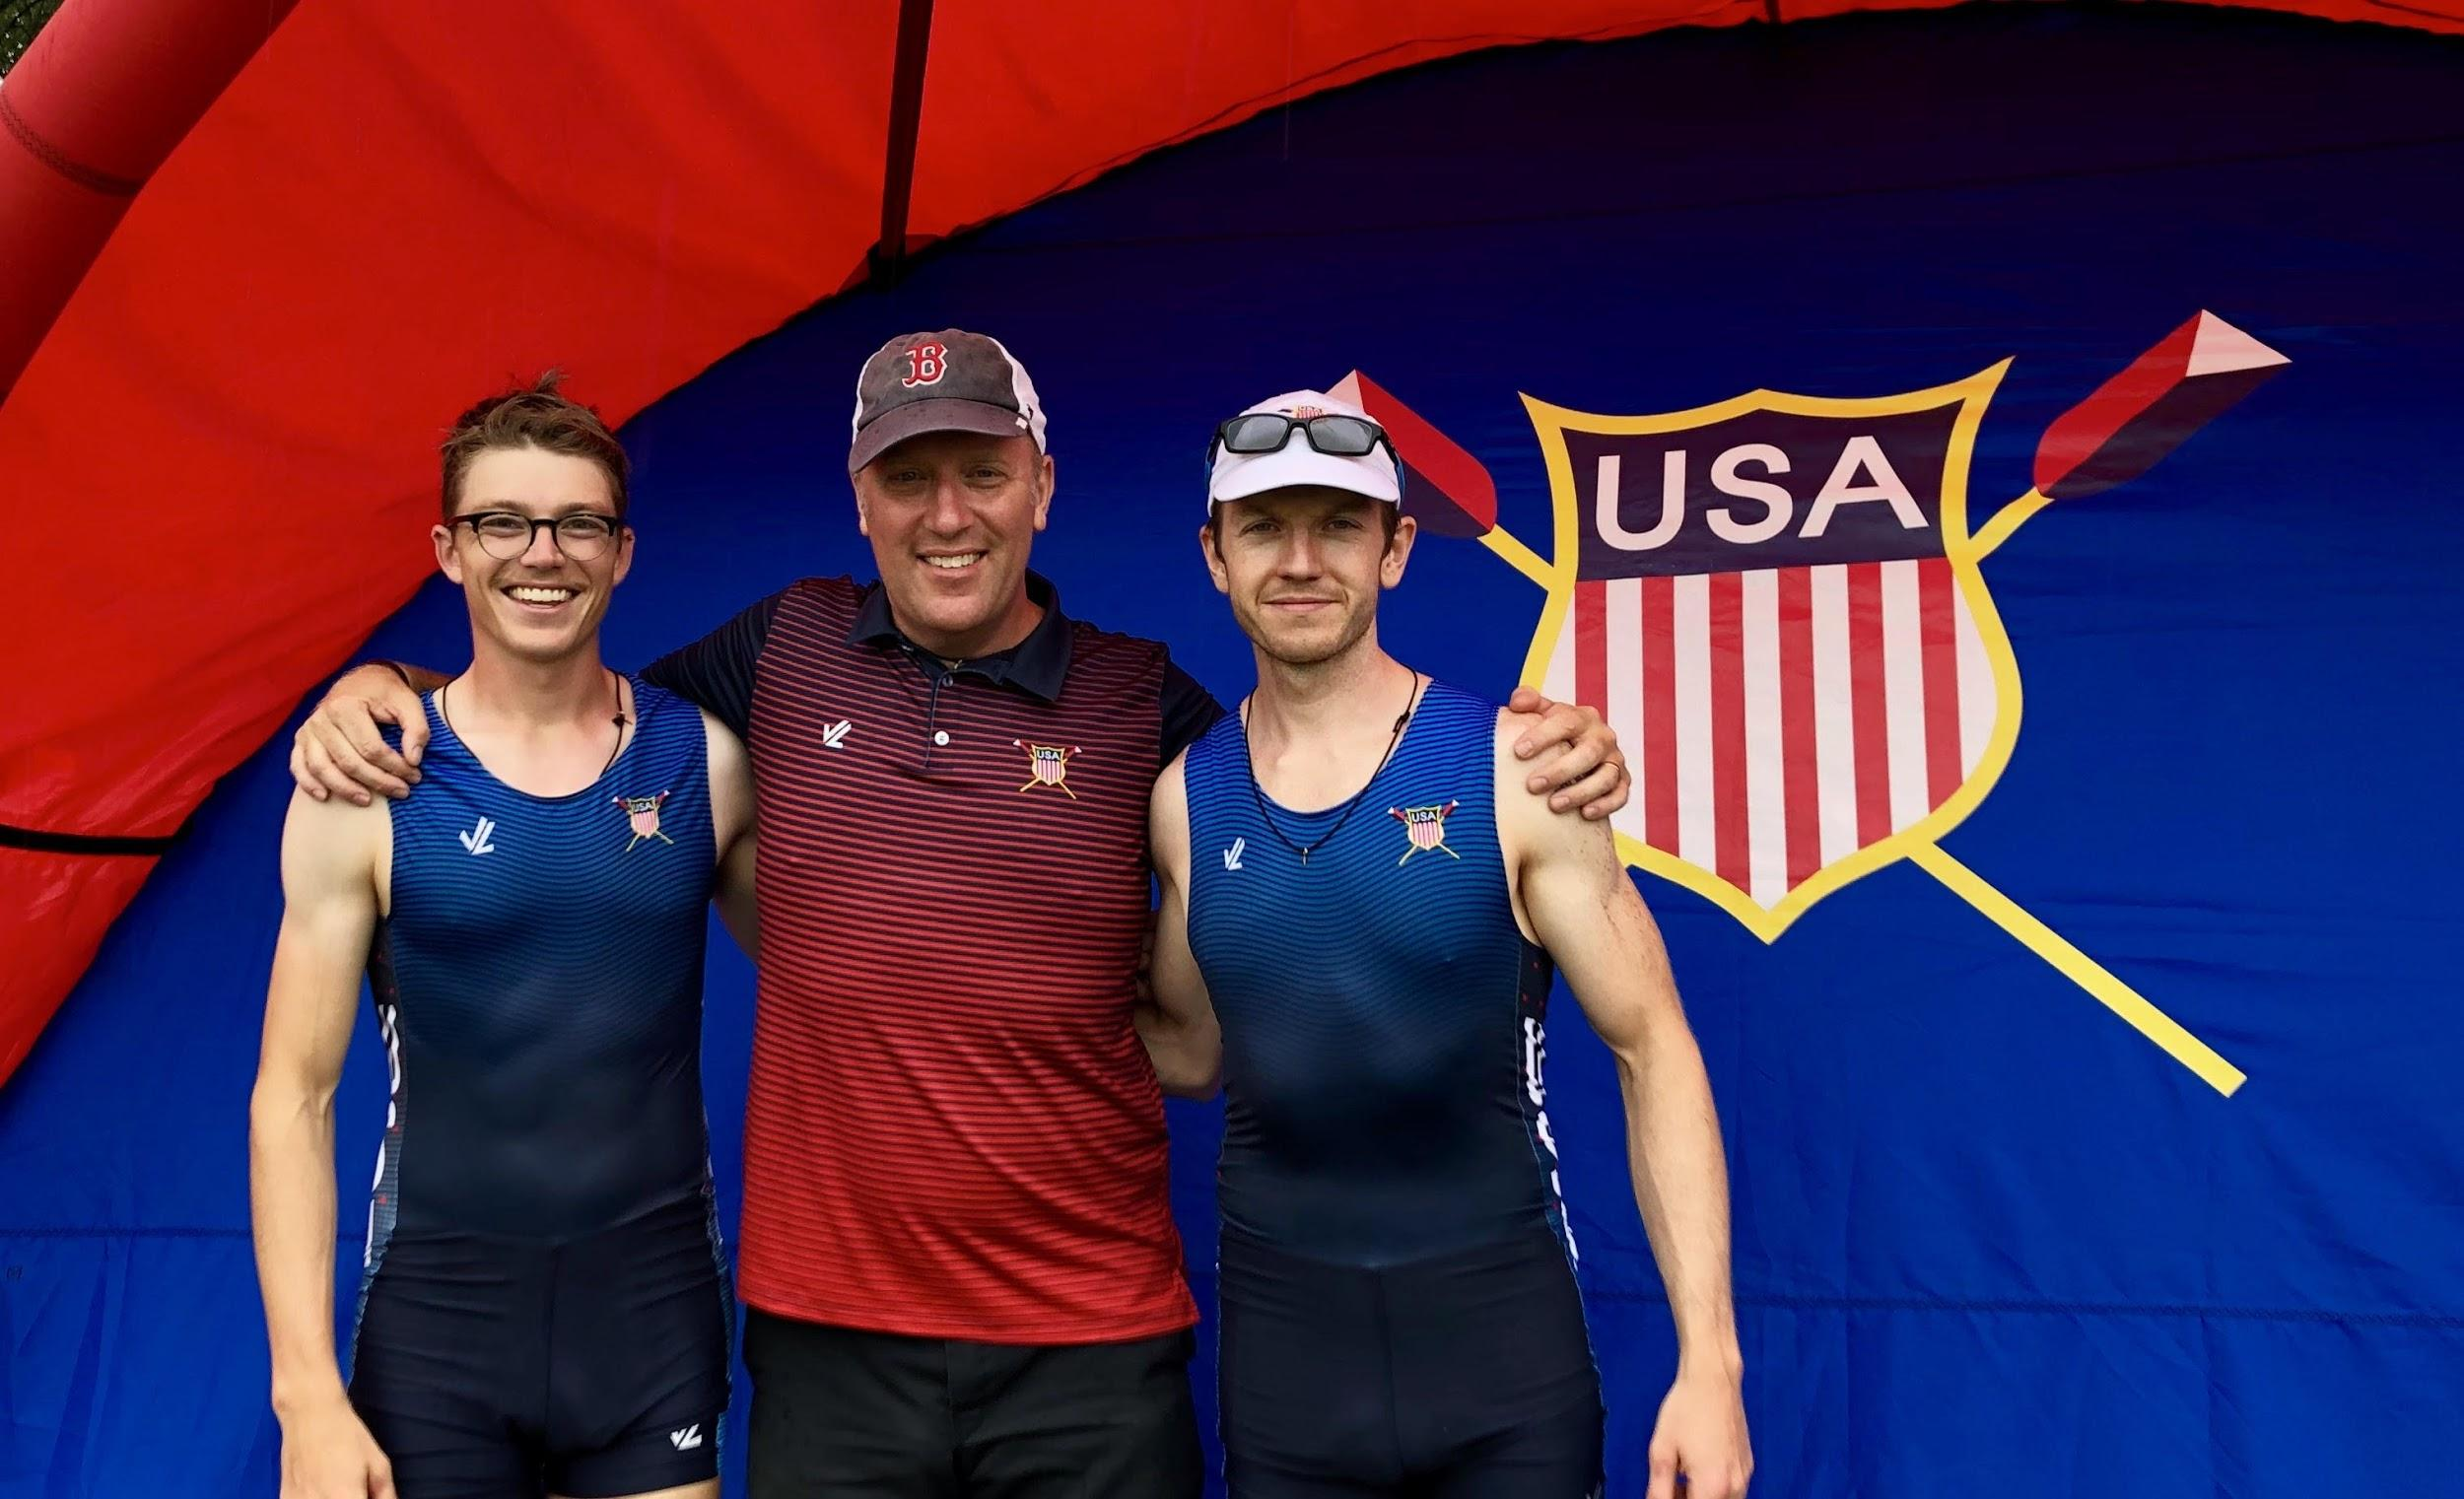 Nelson, Lefebvre and Twist in Team USA gear